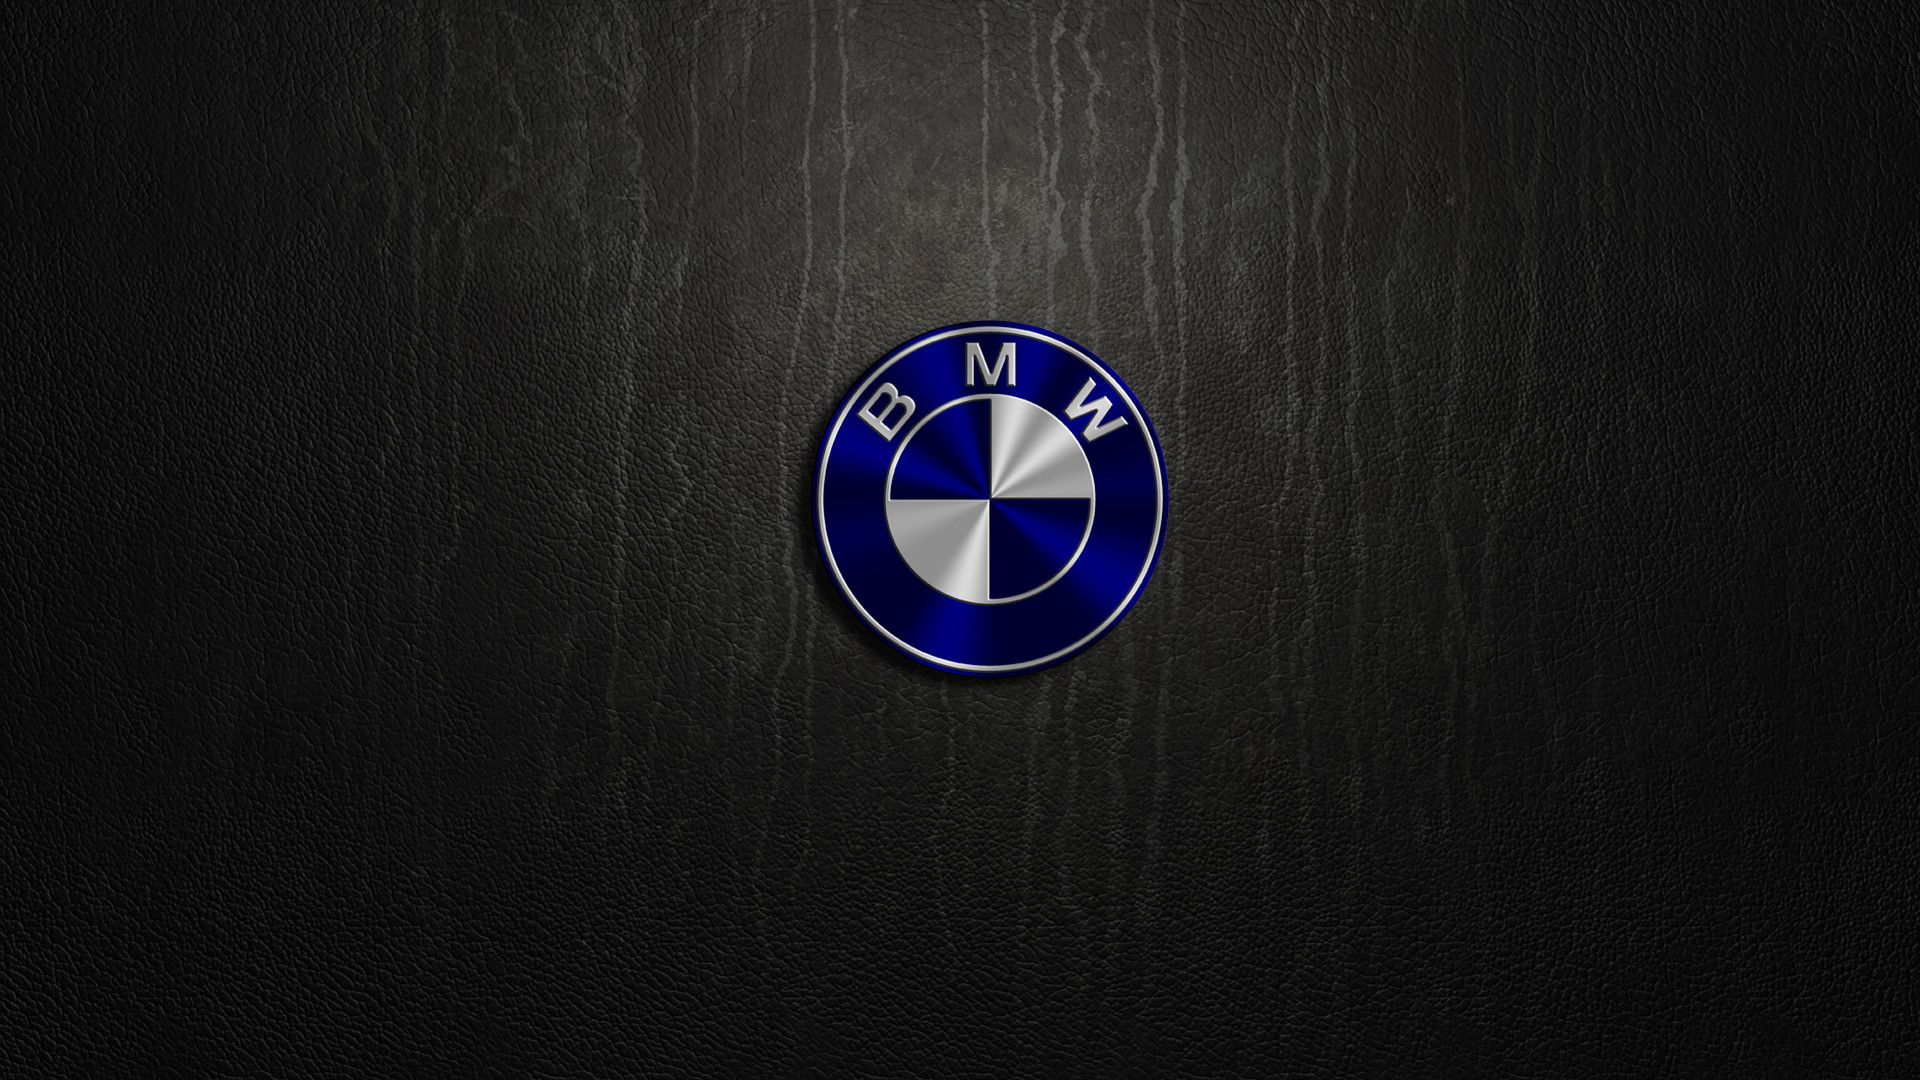 BMW Logo Wallpapers (65+ images).